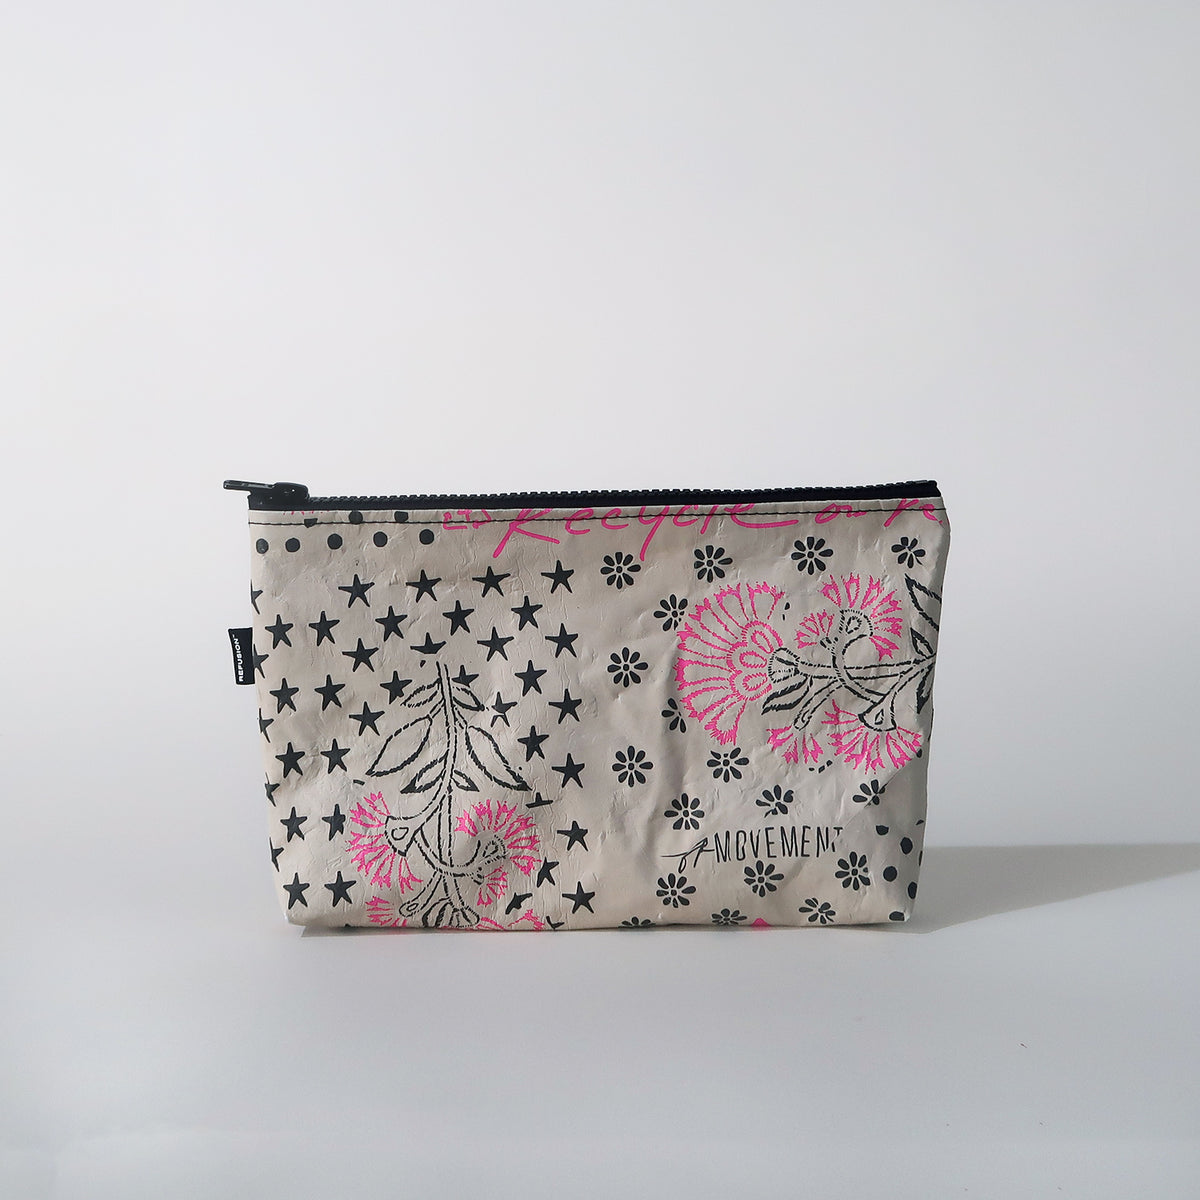 REFUSION™ x Rais Case Zipper Pouch - 009 one of a kind | rais case img 1